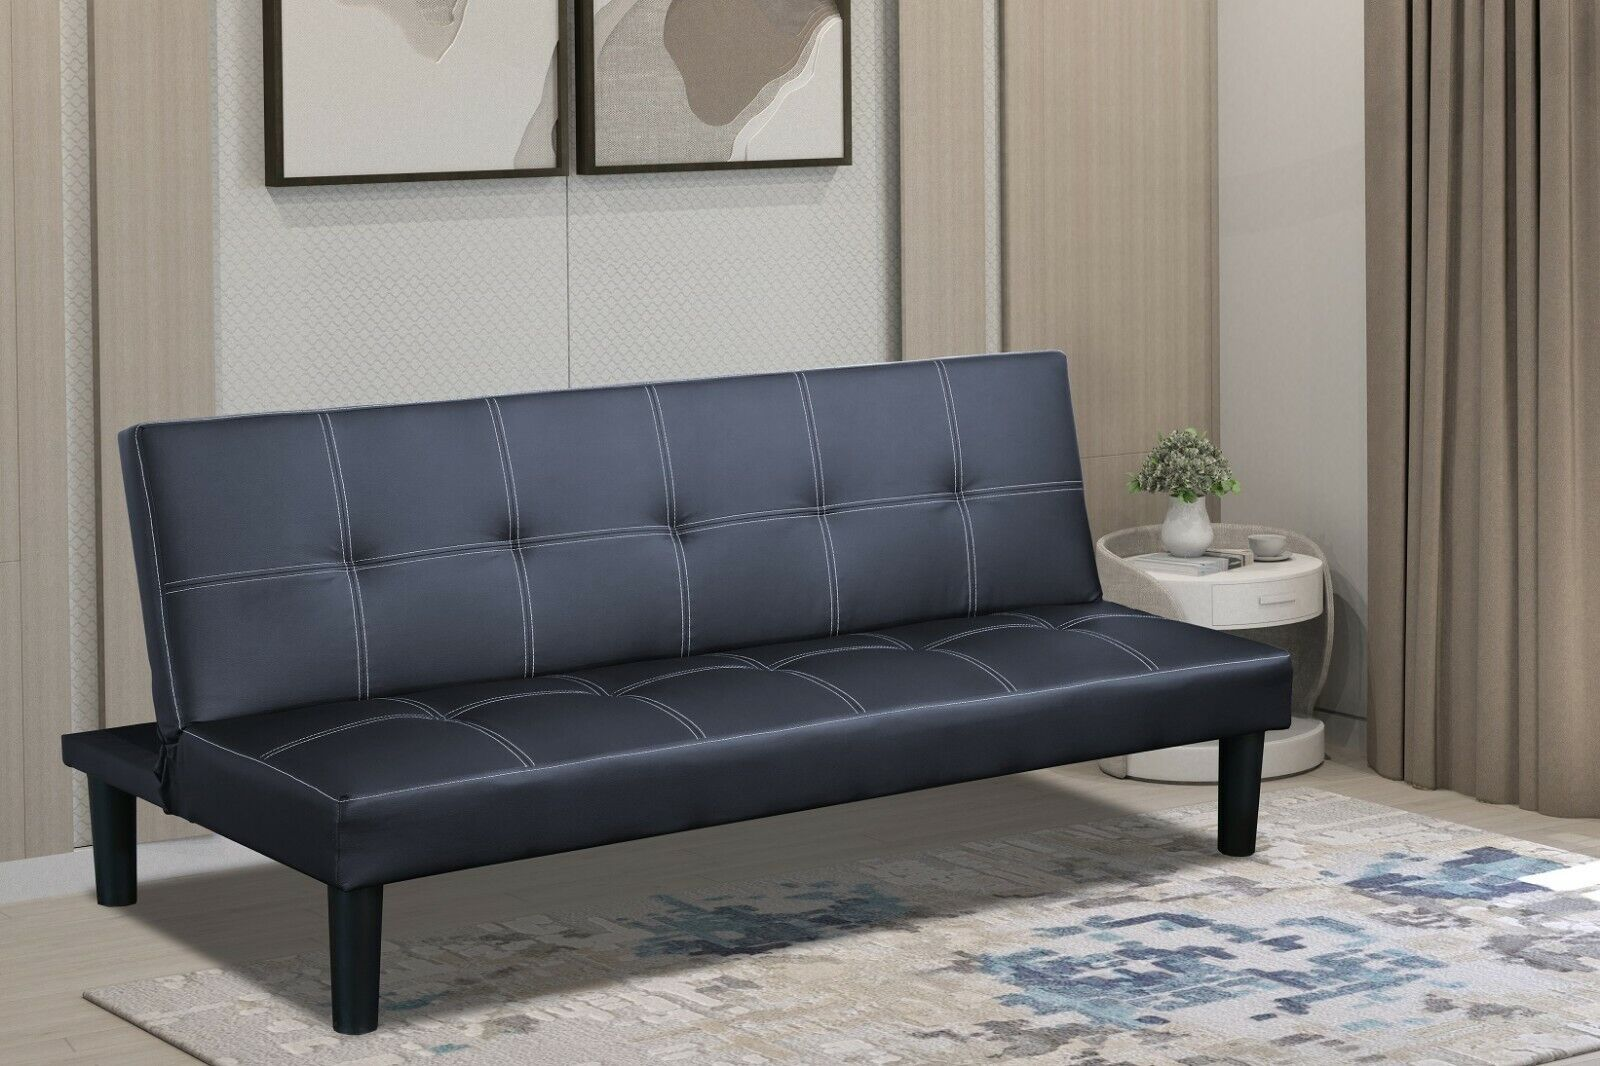 Sofa Sleeper Easy to Use Mechanism 2 In 1 Sofa.3 Seater Faux Leather Sofa Bed